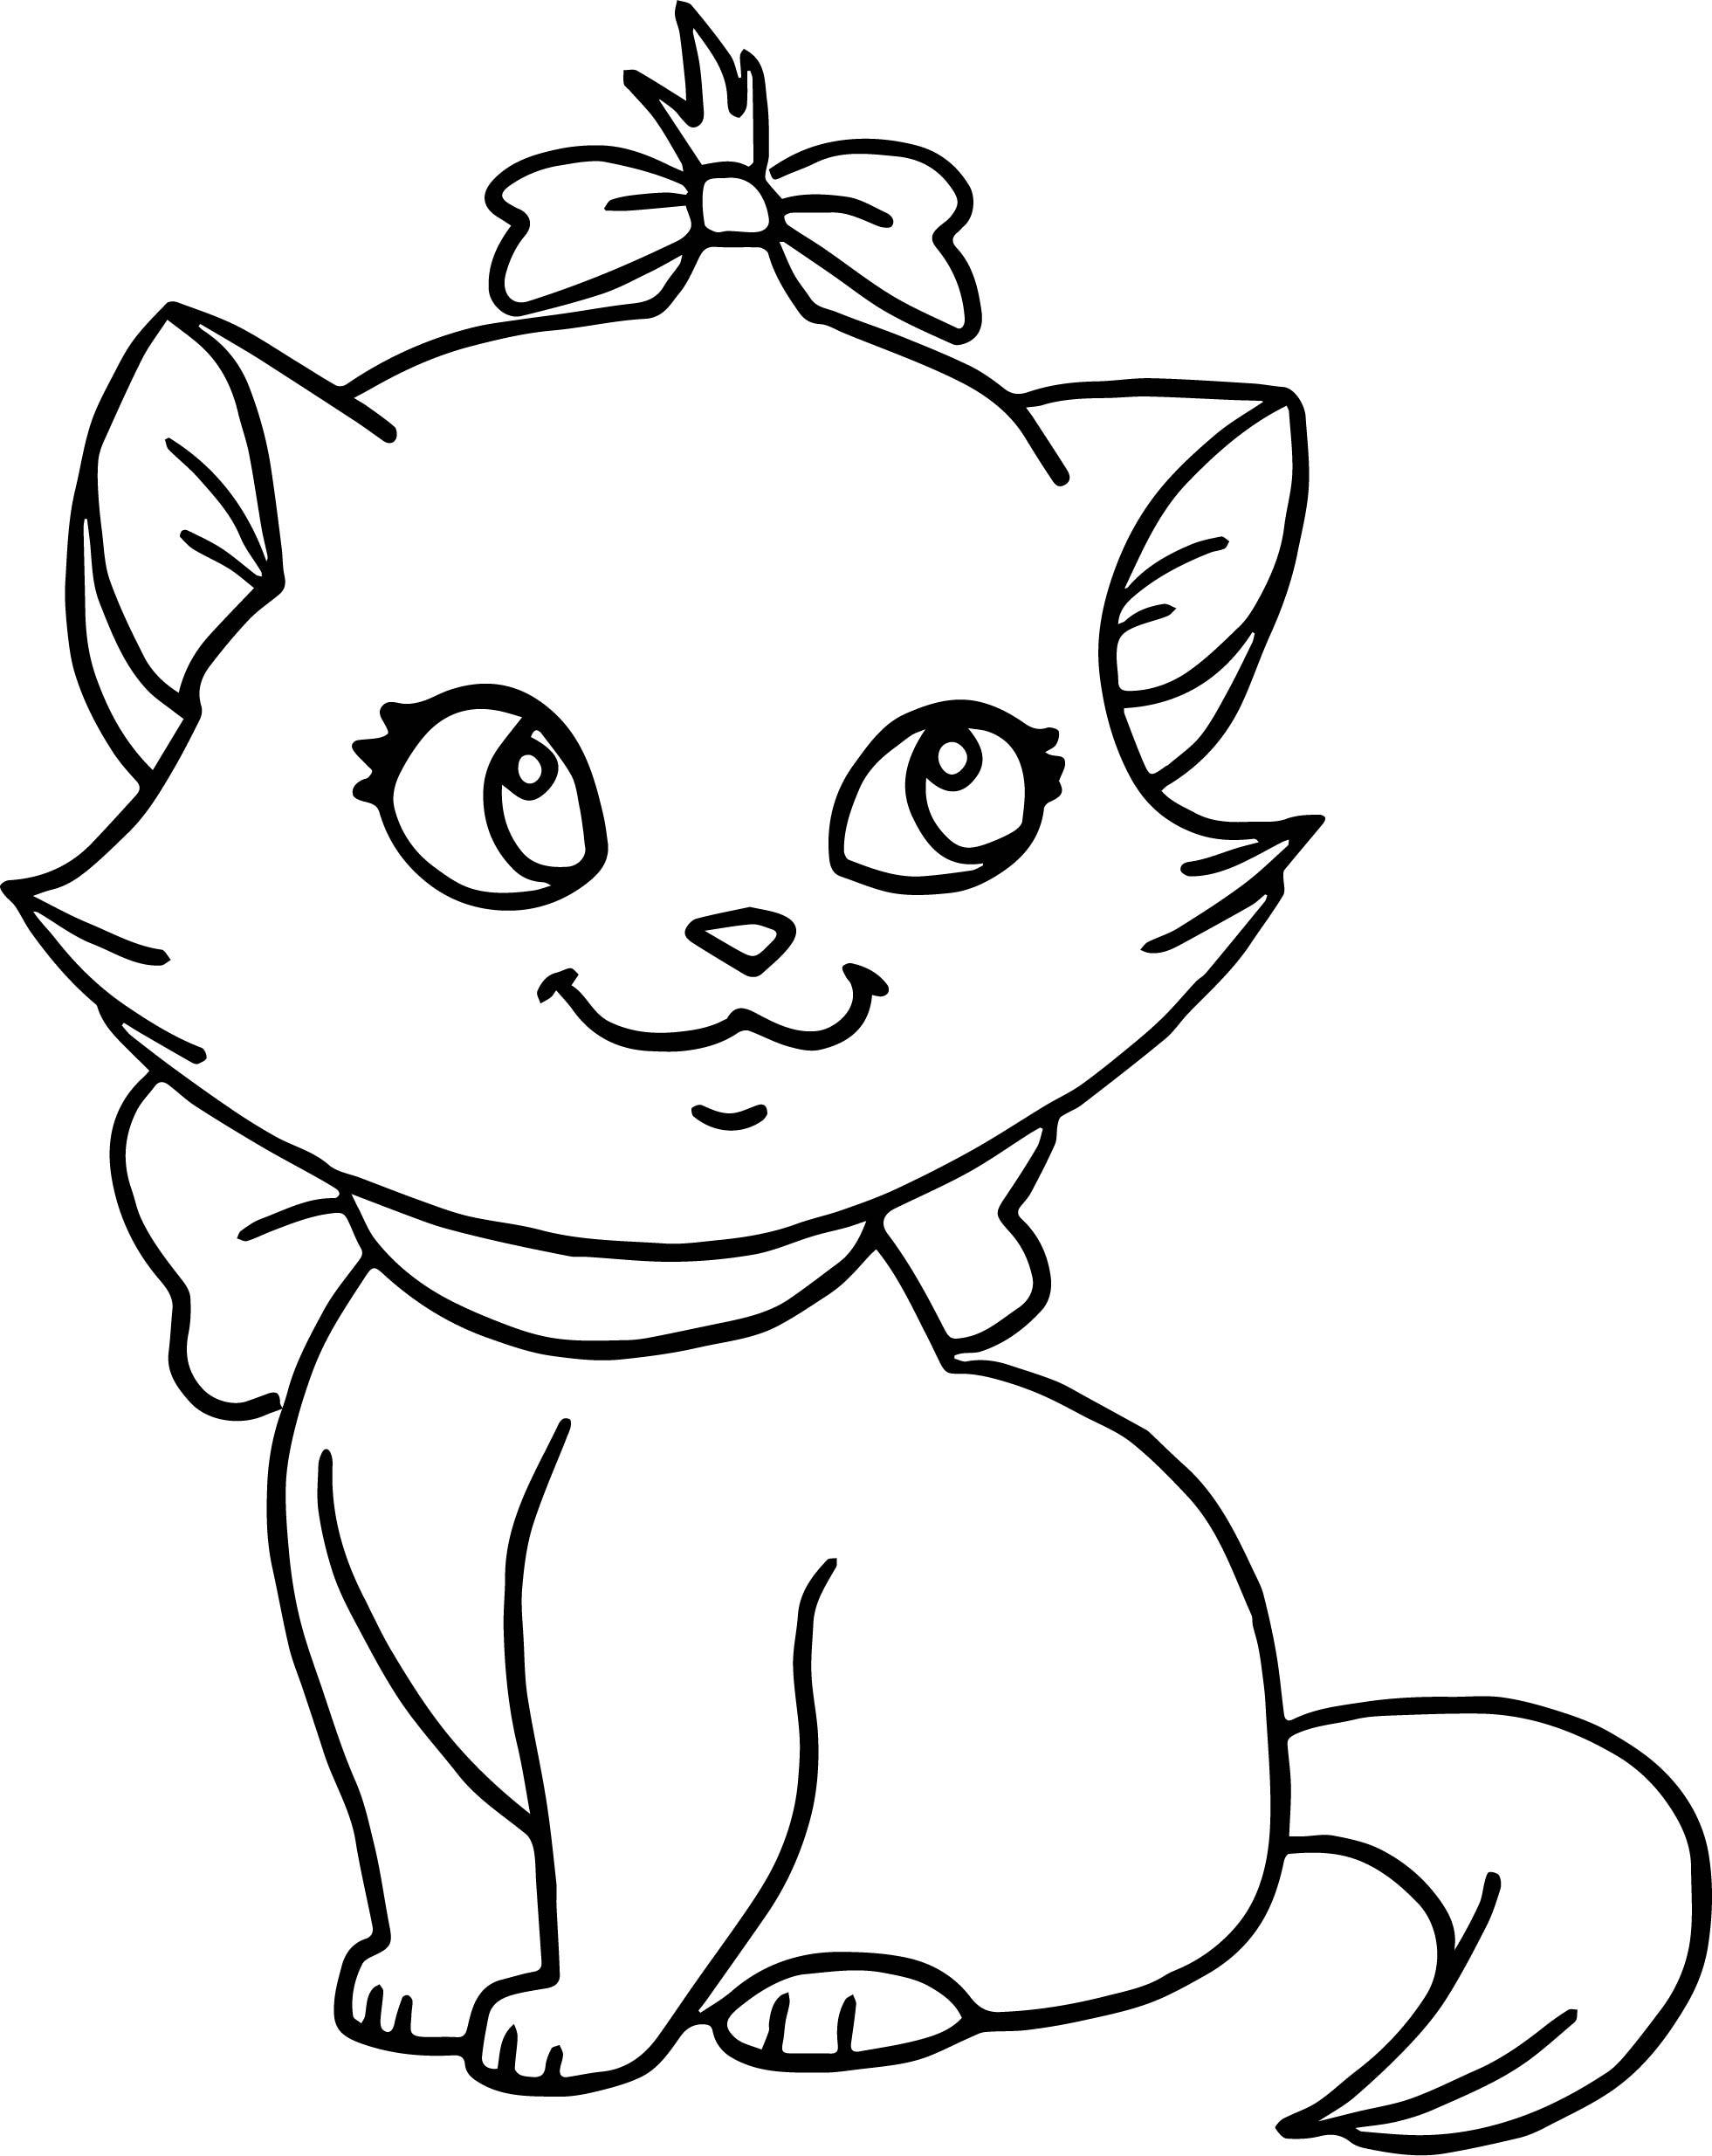 kitten coloring free easy to print kitten coloring pages tulamama kitten coloring